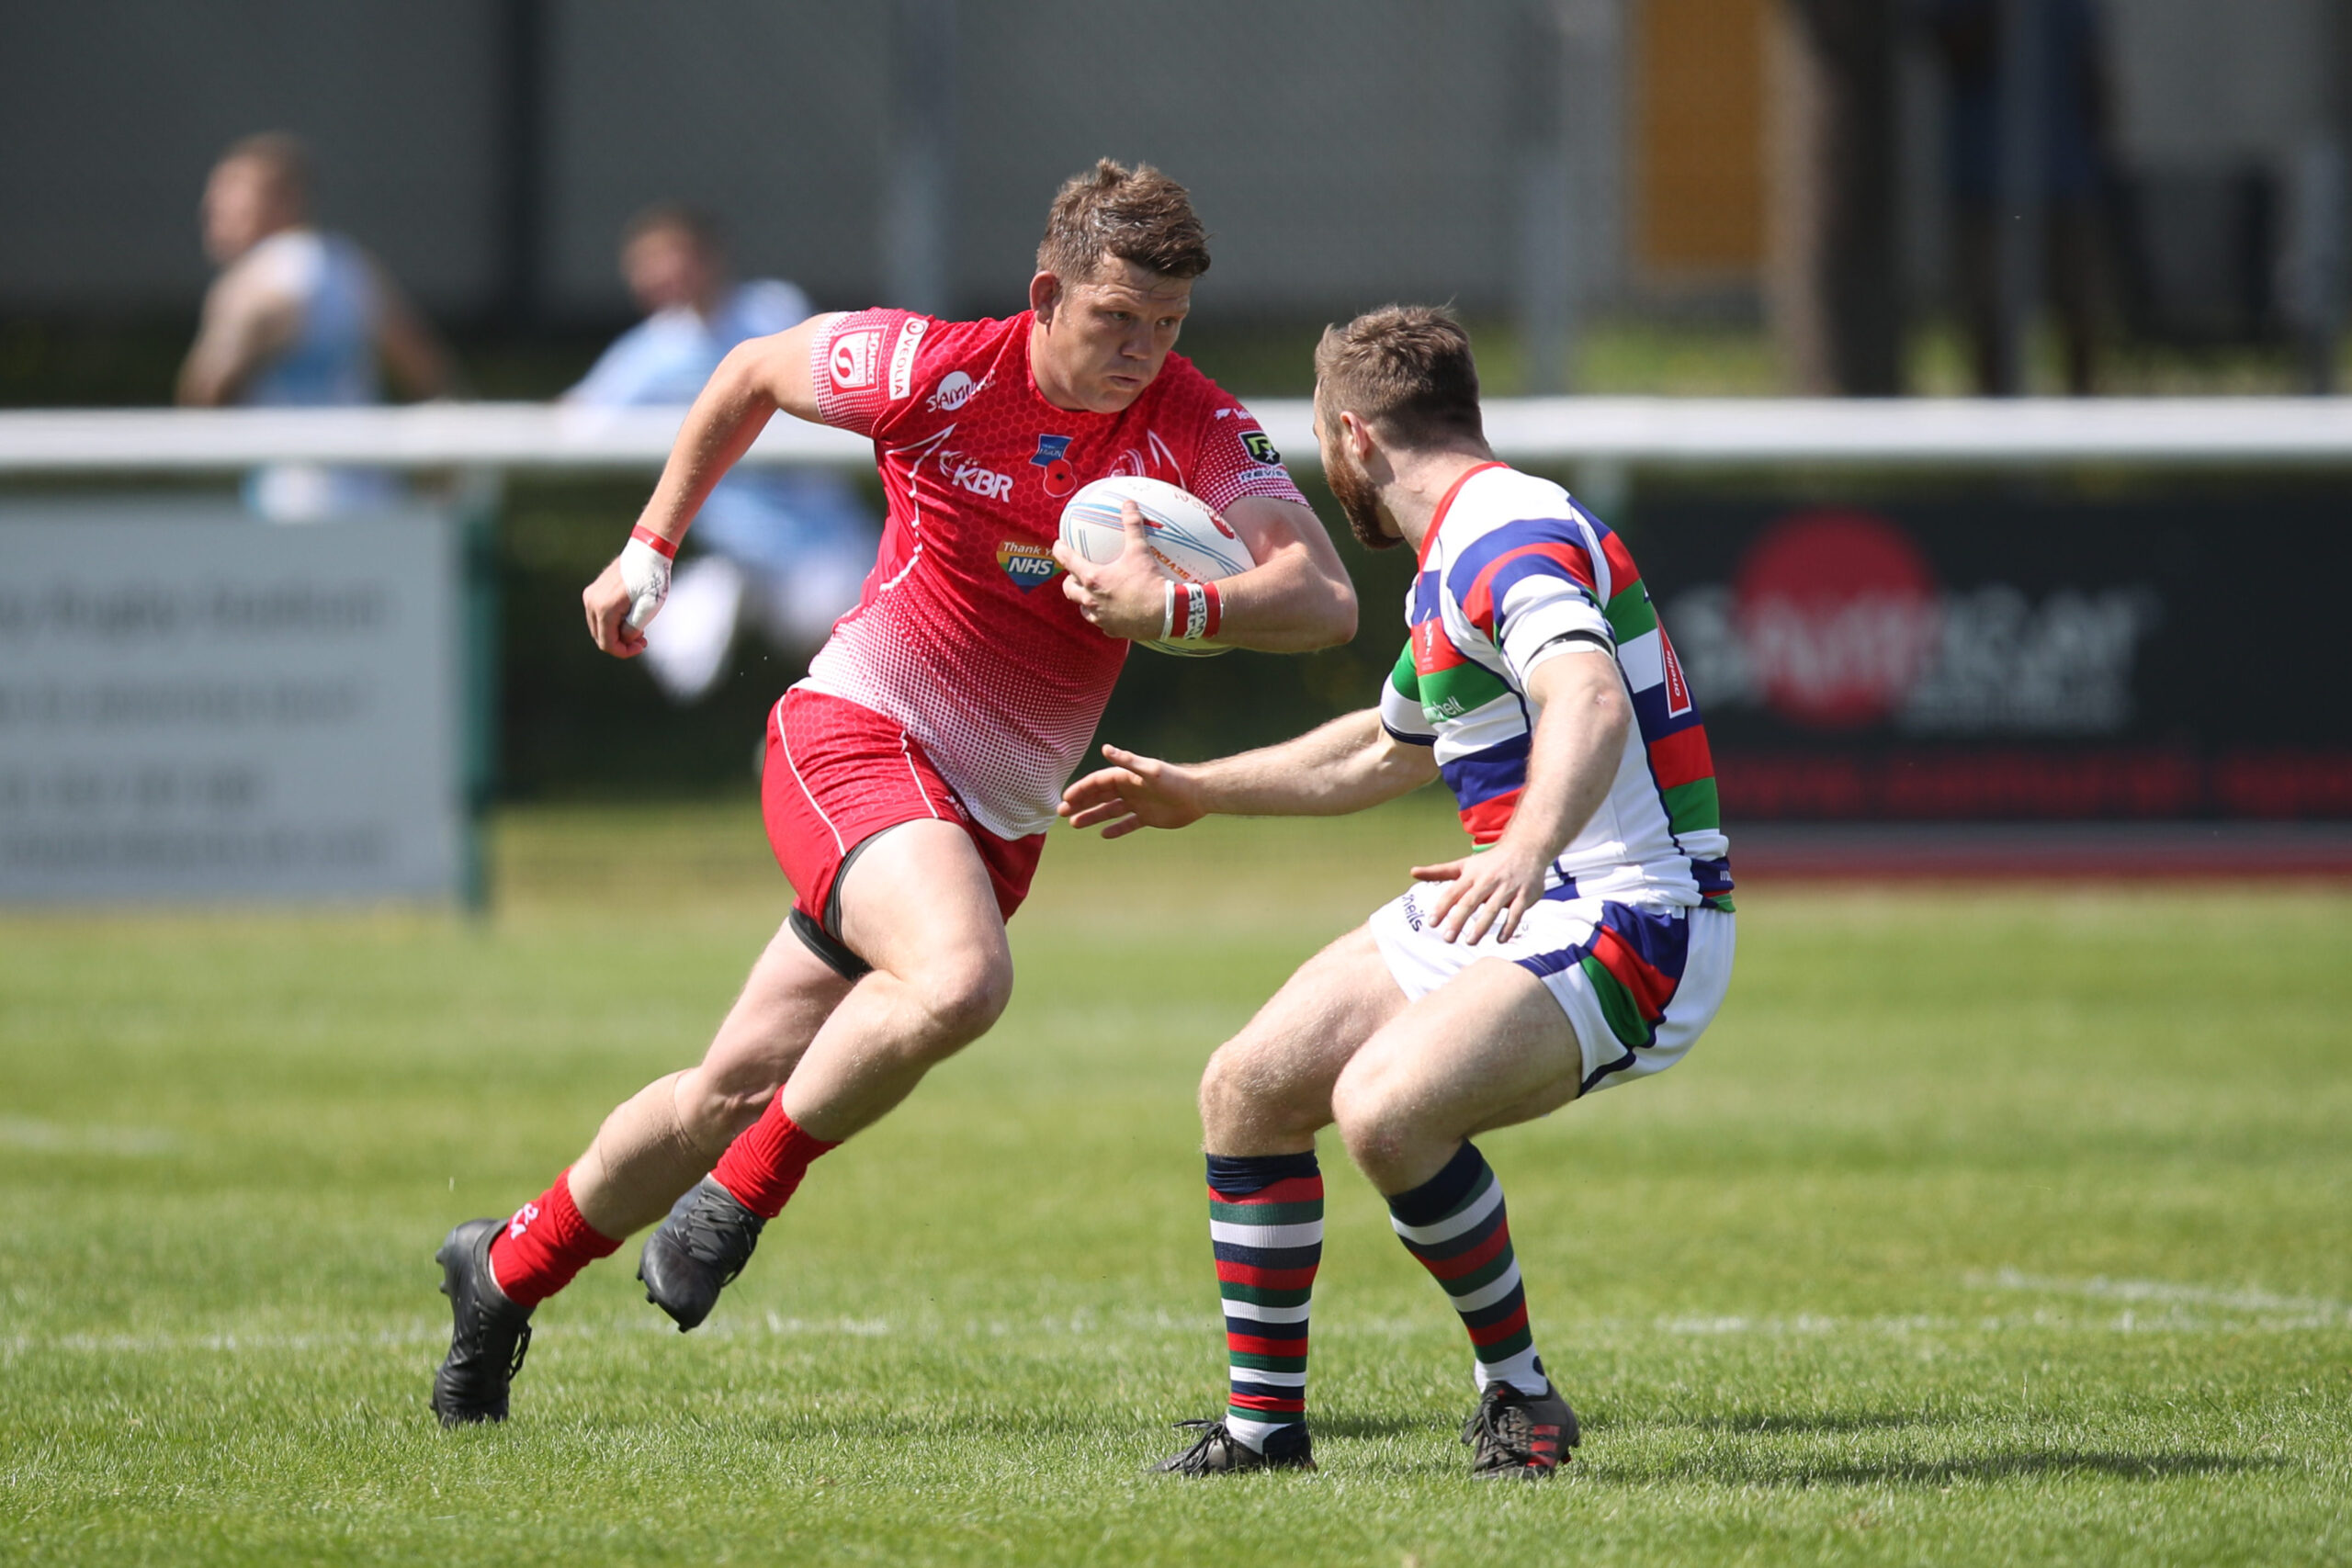 Forces rivalry the highlight of Newbury Sevens